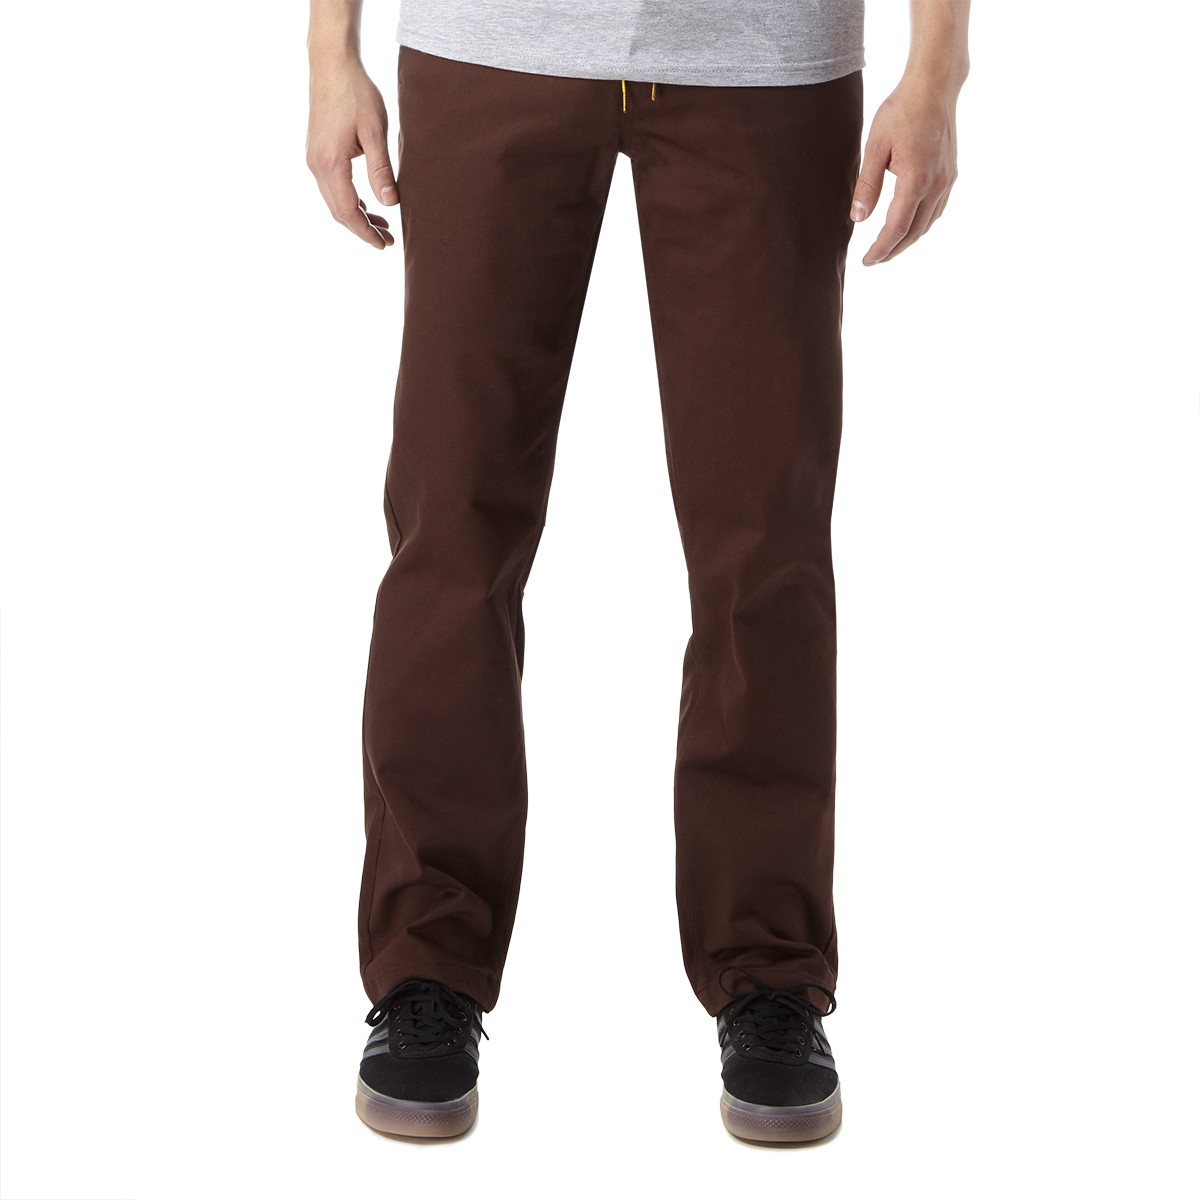 Expedition Drifter Chino Pants - Dark Brown